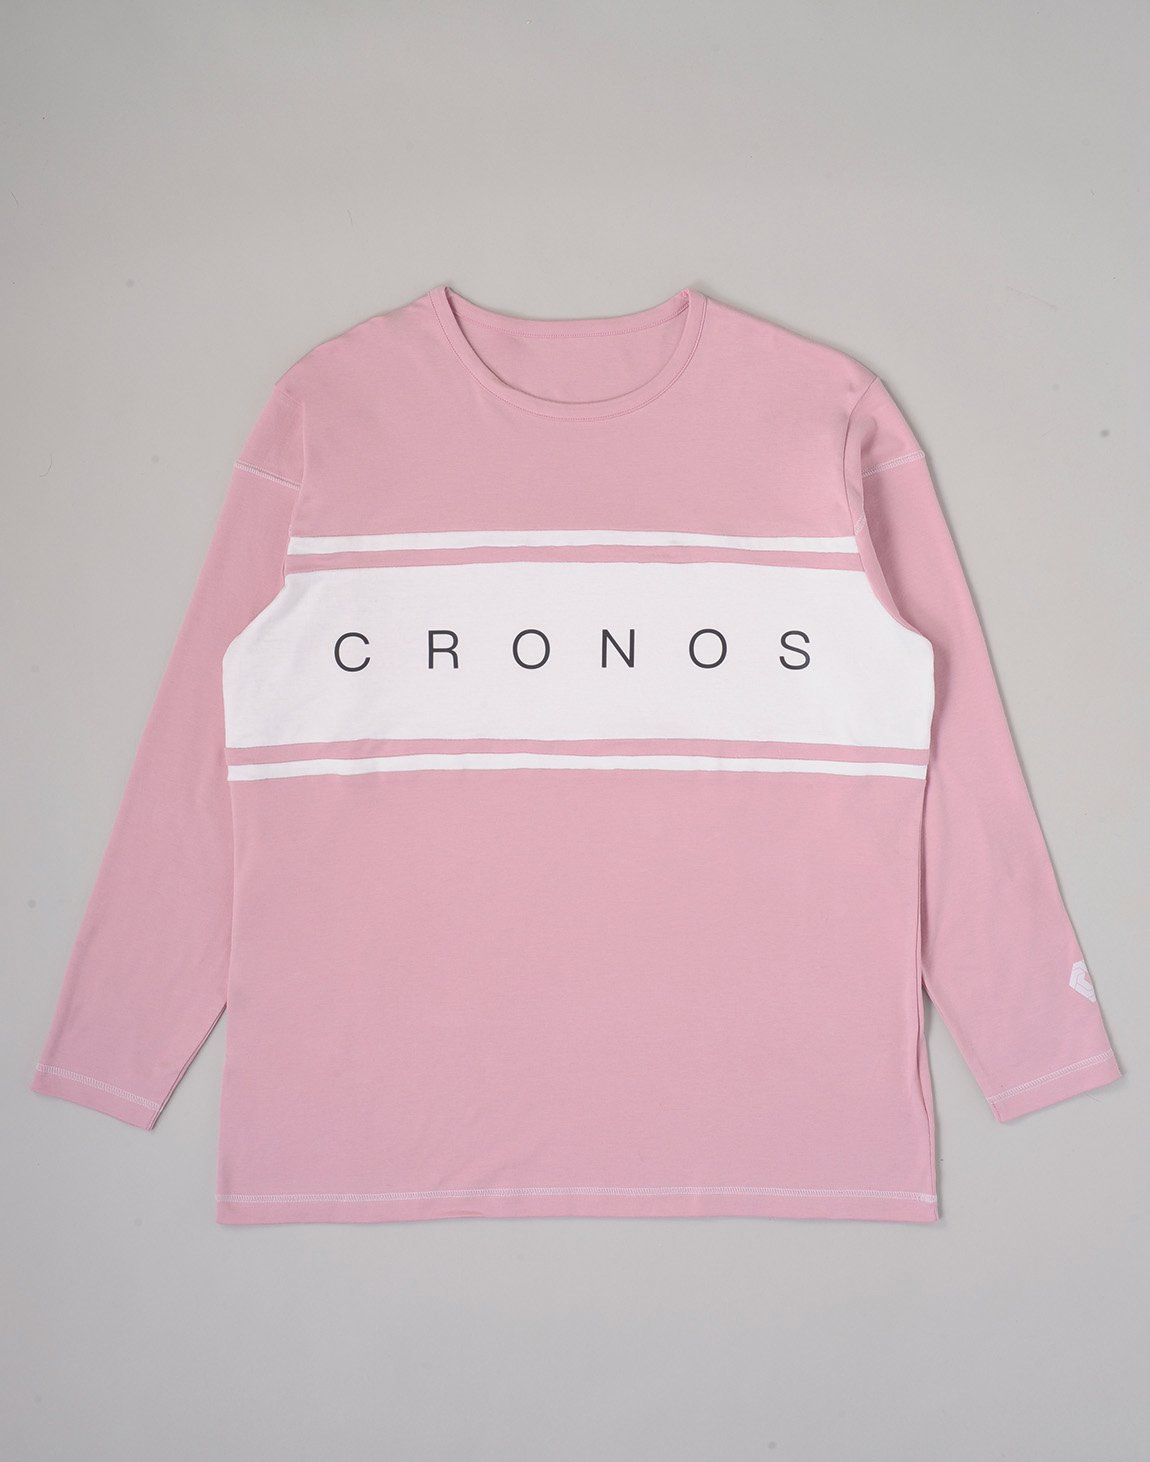 <img class='new_mark_img1' src='https://img.shop-pro.jp/img/new/icons1.gif' style='border:none;display:inline;margin:0px;padding:0px;width:auto;' />CRONOS BANNER LOGO BIG LONG SLEEVE【PINK】